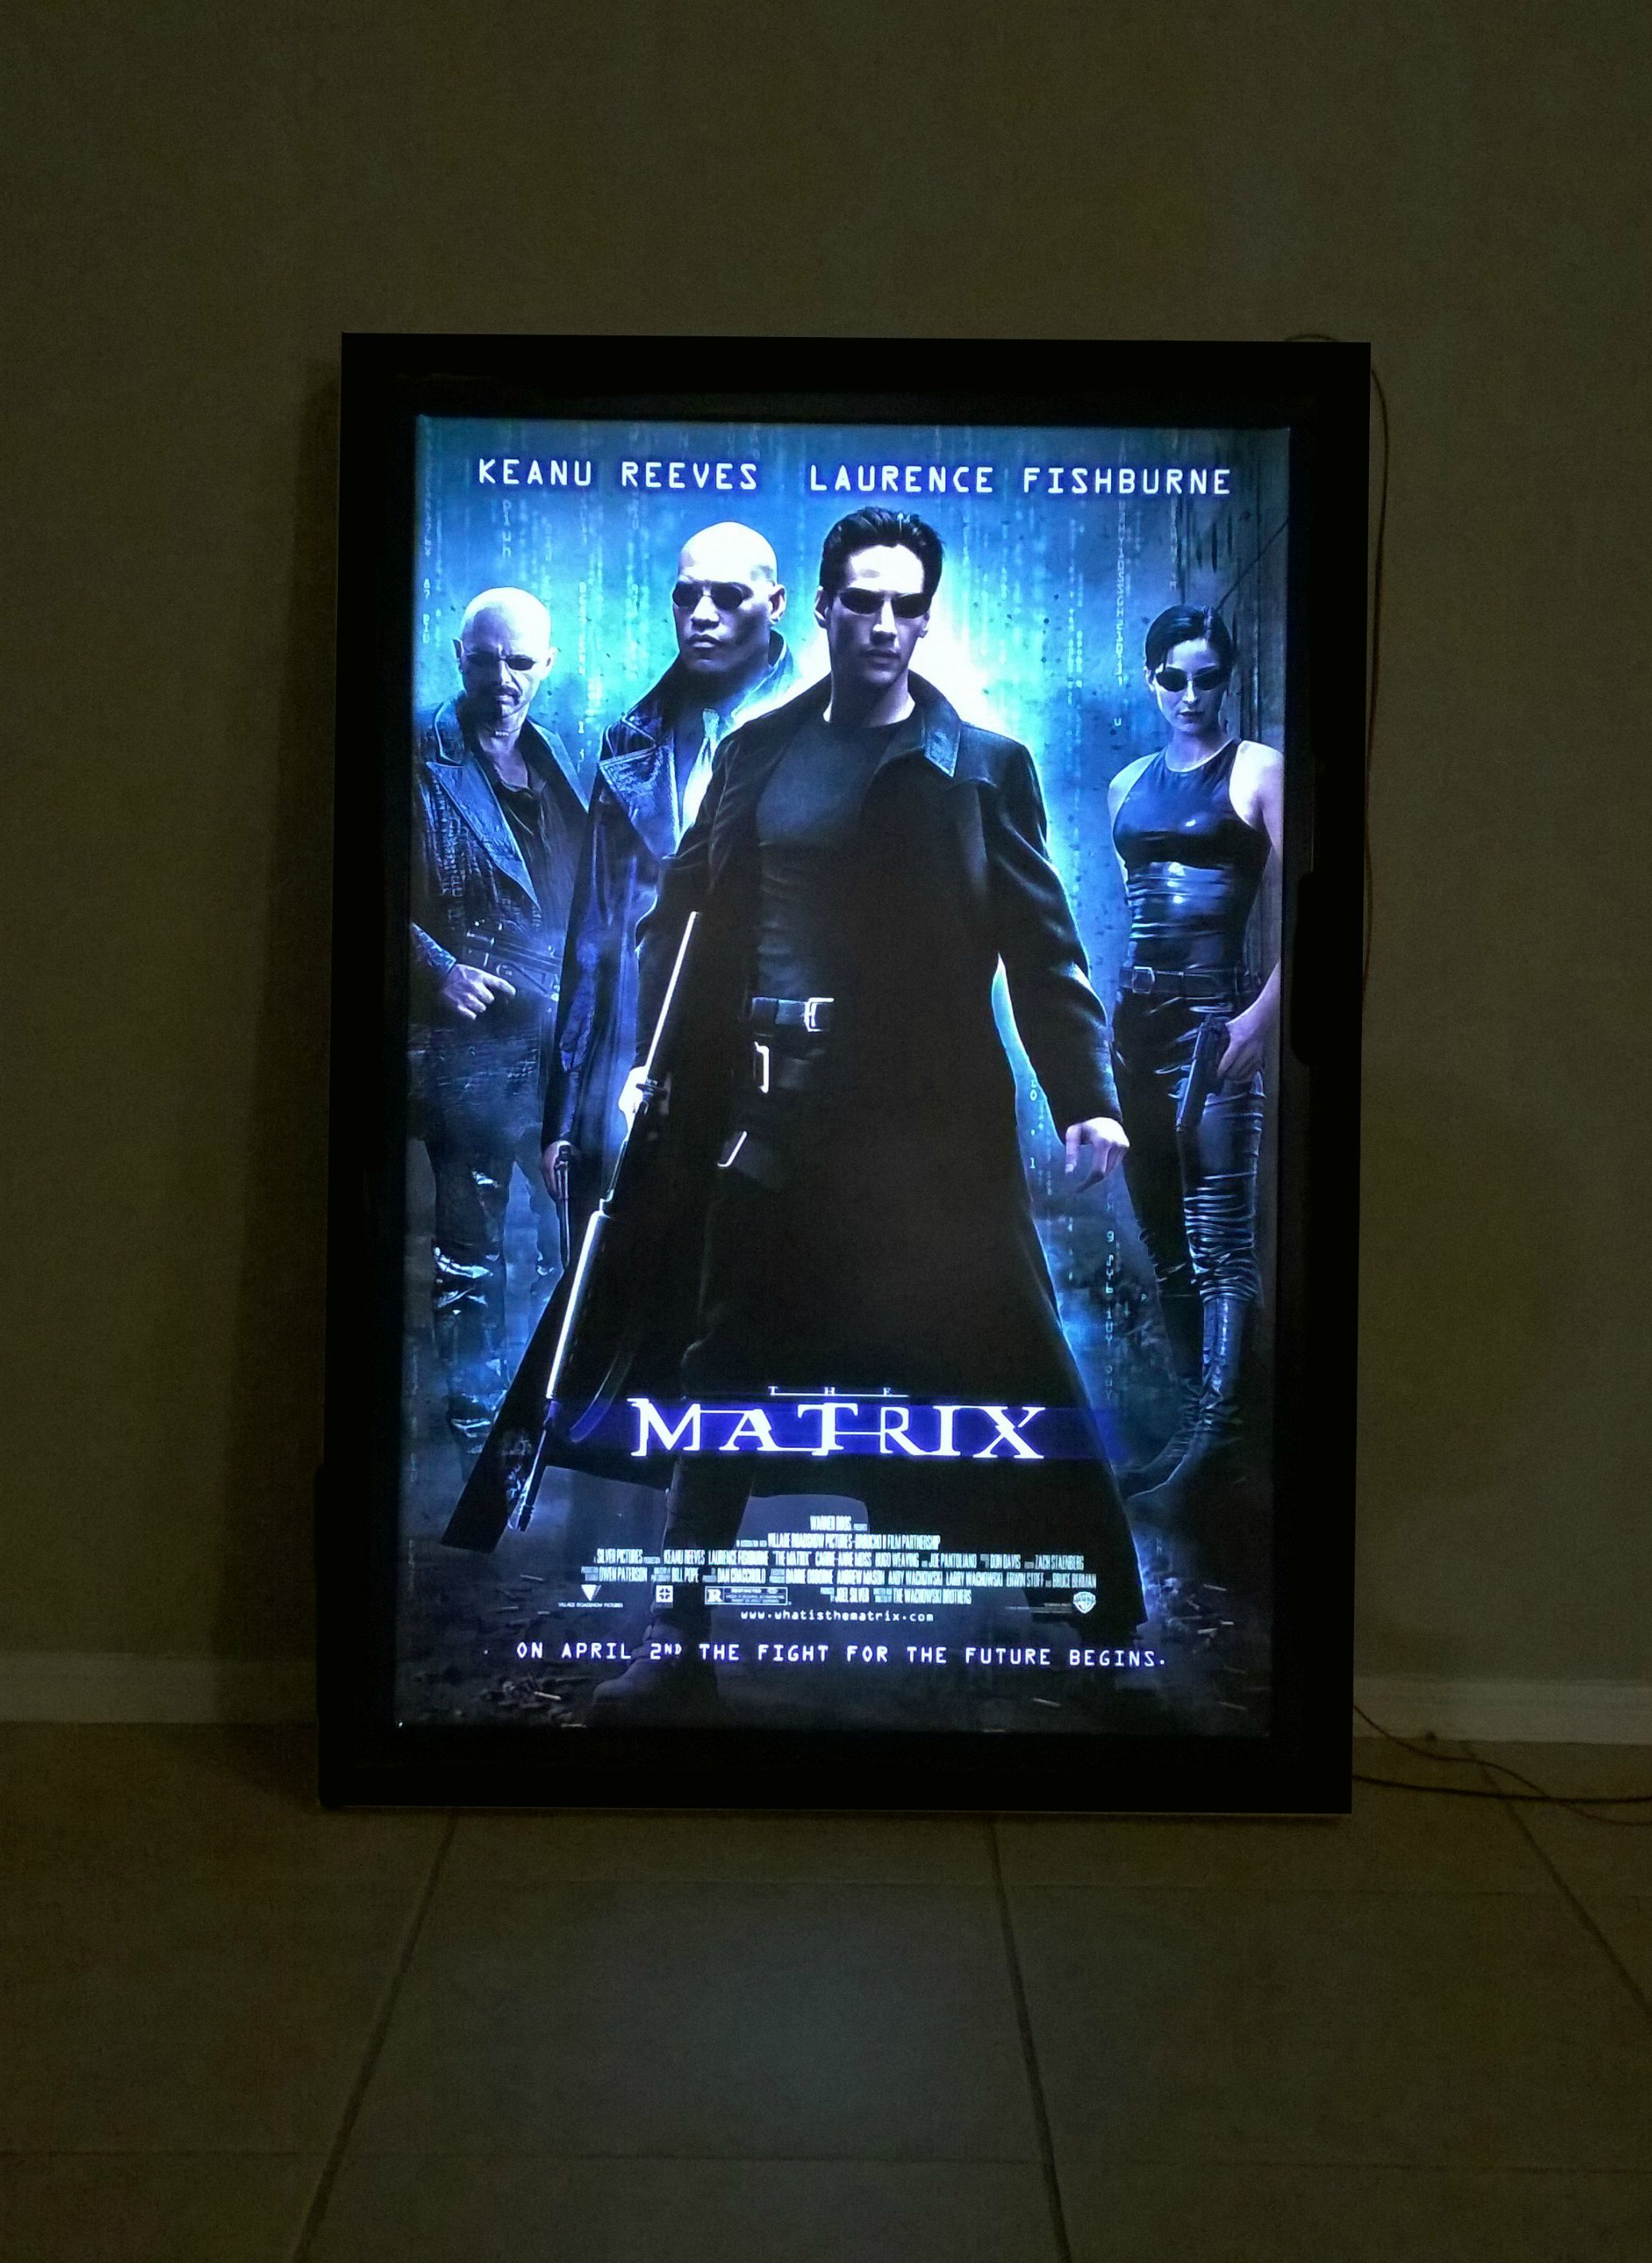 led movie poster light box projects pinterest movie